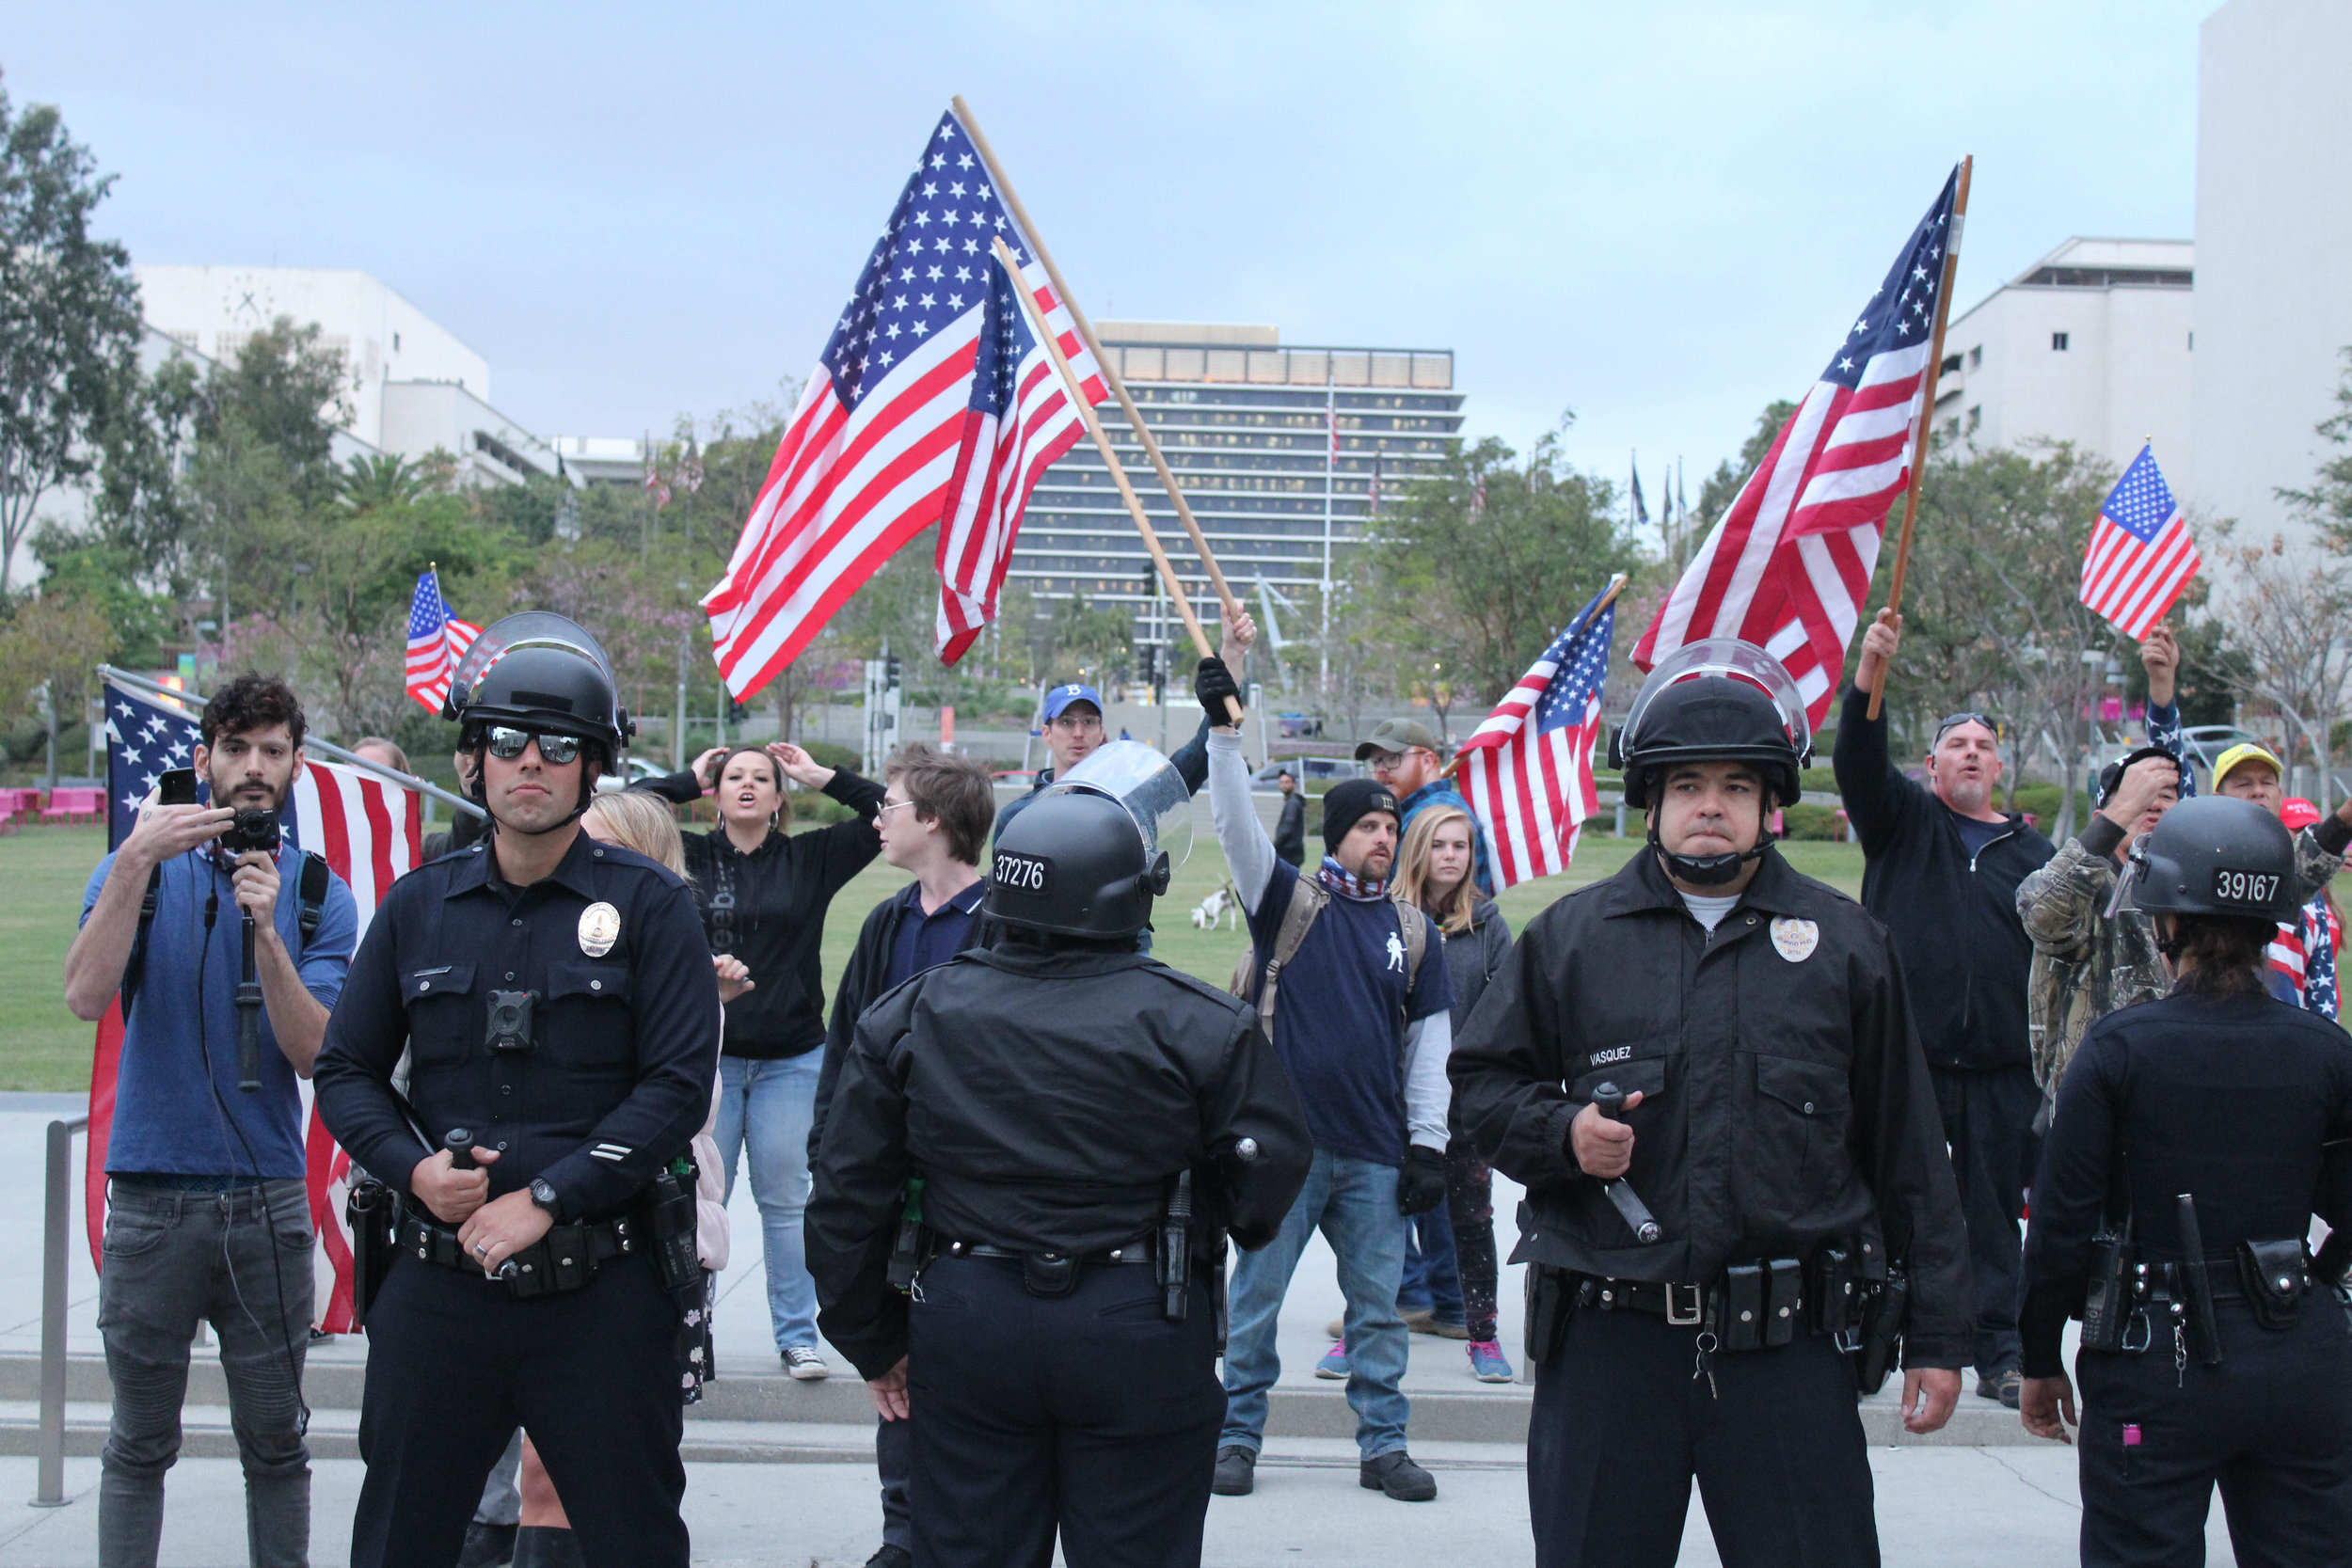 LAPD officers create a barrier around the few Donald Trump supporters in downtown Los Angeles on May 1, 2018. (Daniel Farr/Corsair Photo).